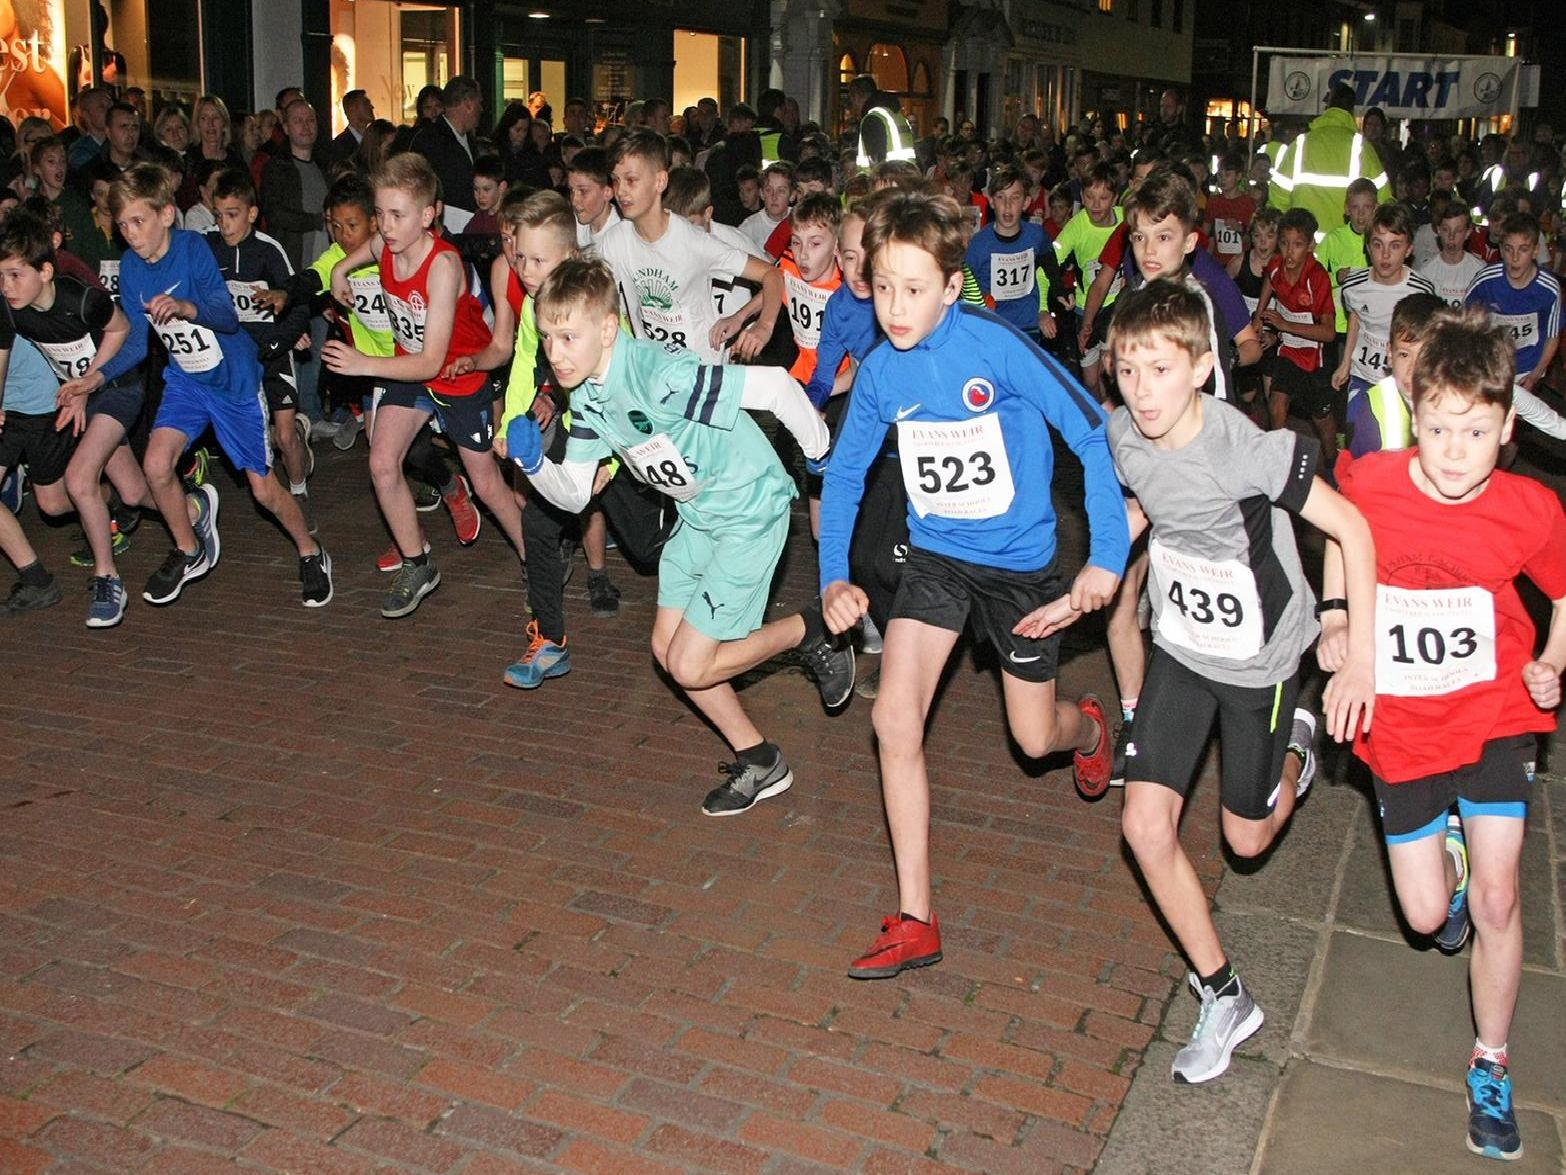 The start of the Year 6 boys' race / Picture by Derek Martin